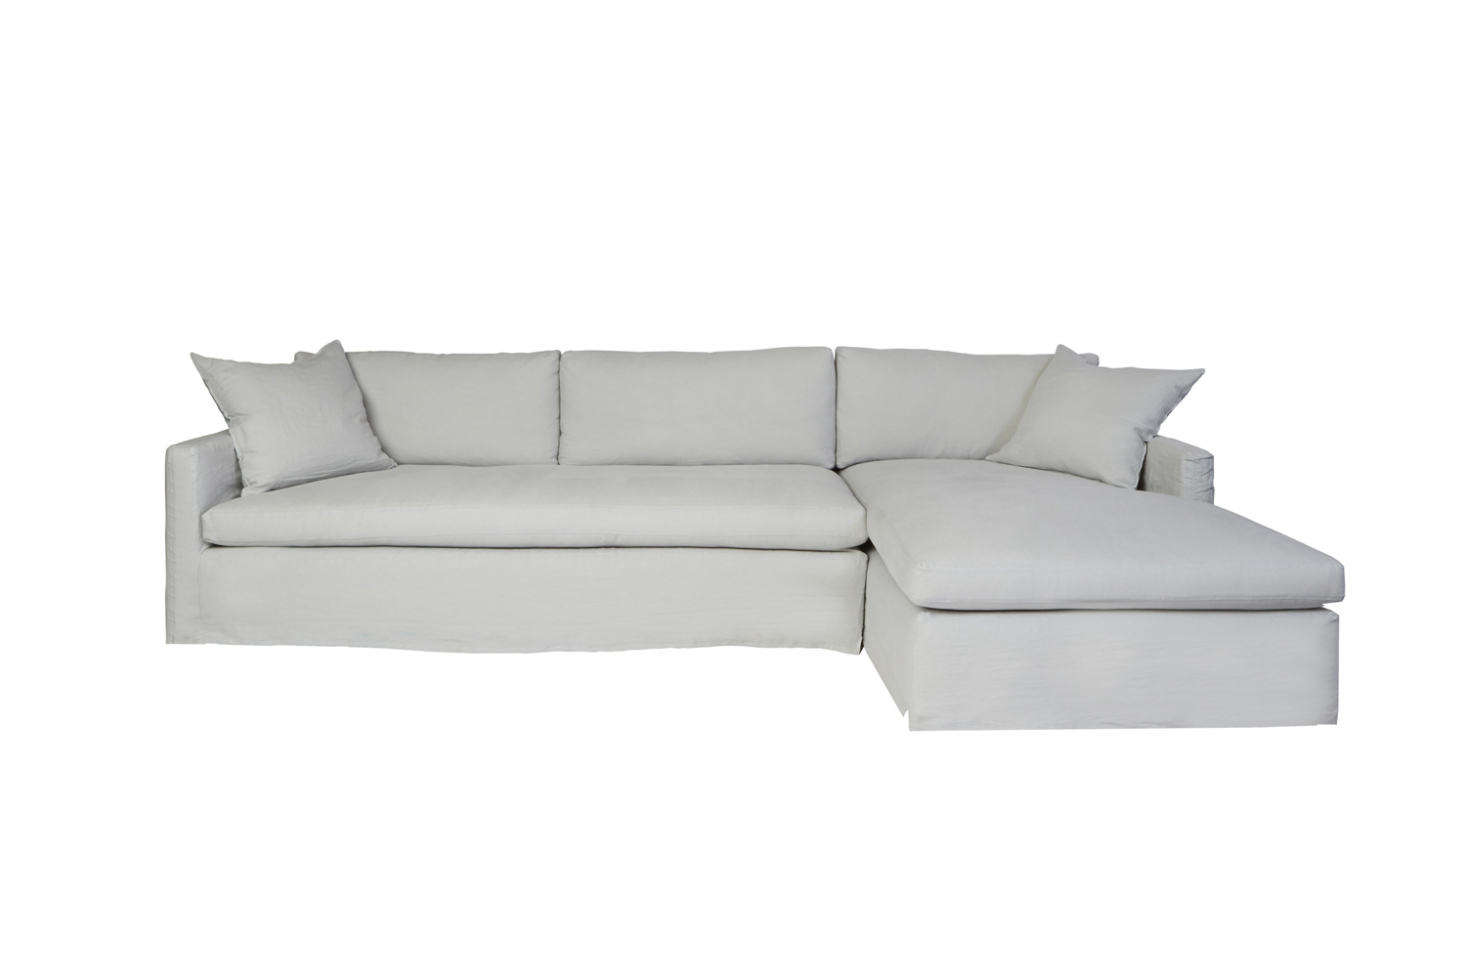 cisco brothers sofa reviews leather protector from dogs steal a awesome home